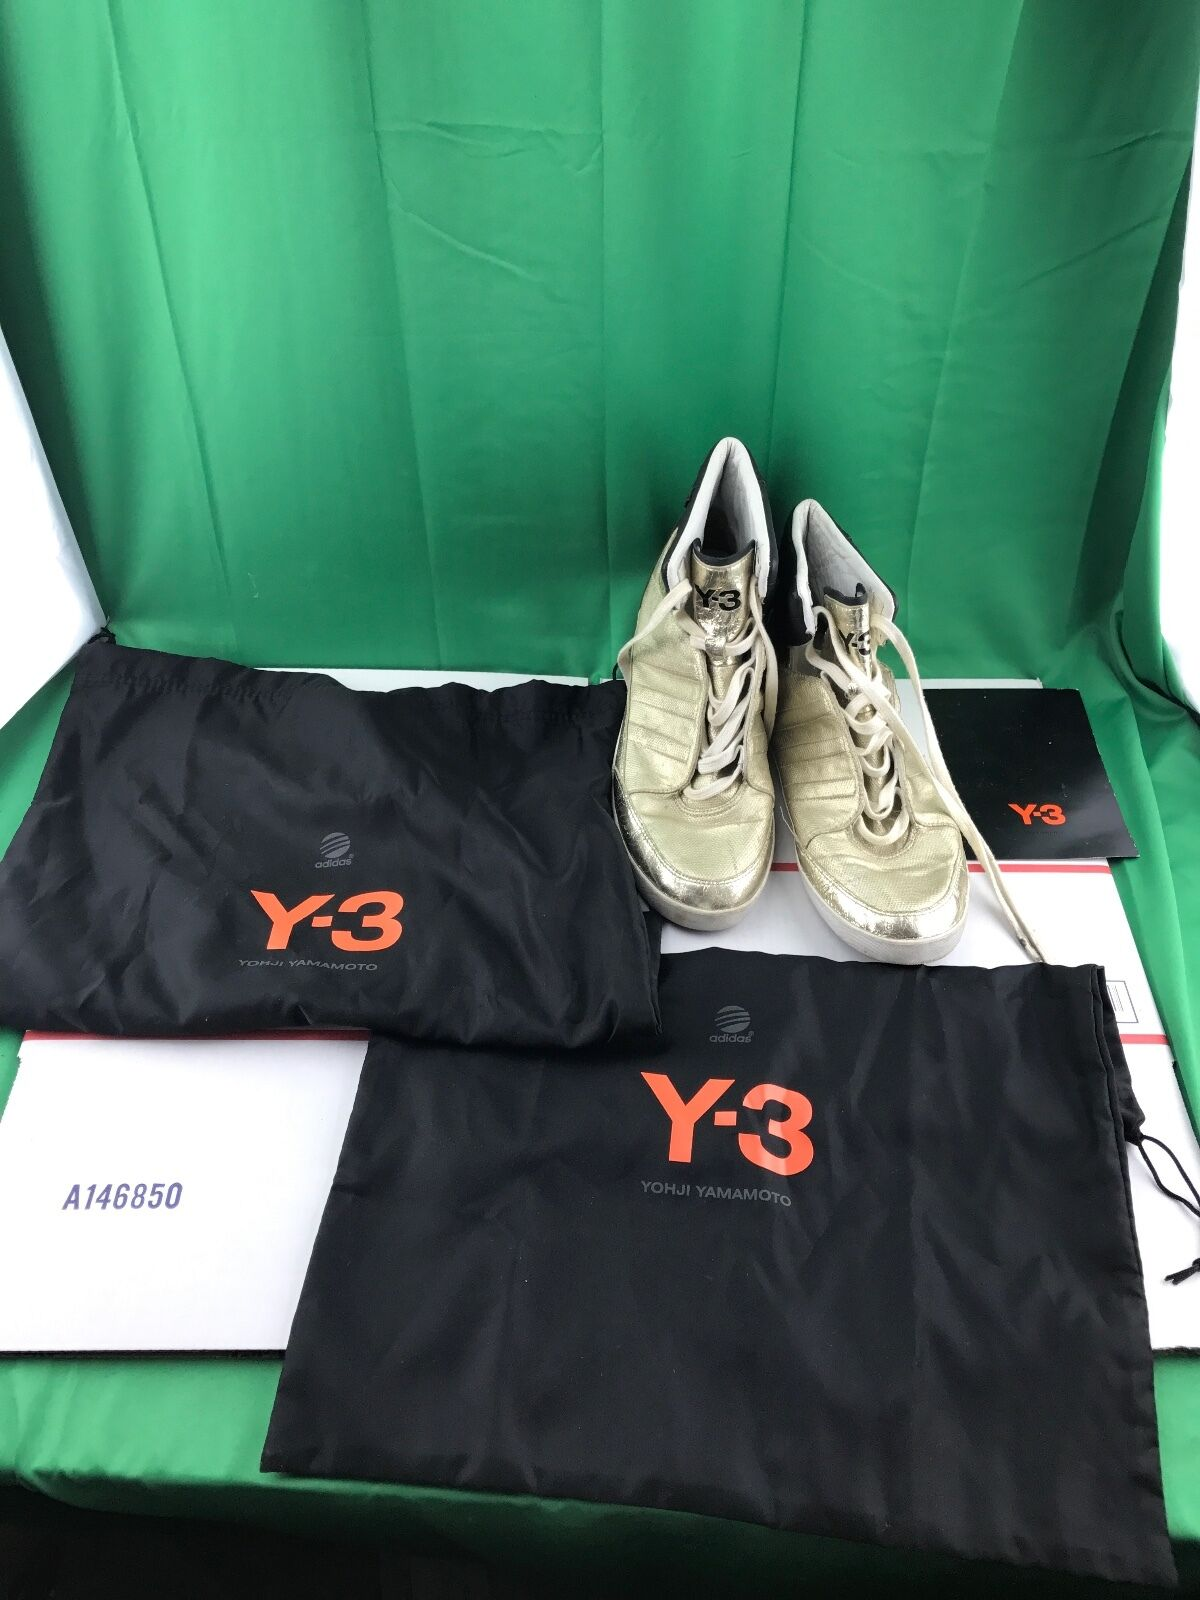 Adidas Boots Y-3 Yohji Yamamoto High Gold Boost Ankle Boots Adidas Sneakers Shoes Sz 8 60c4a9